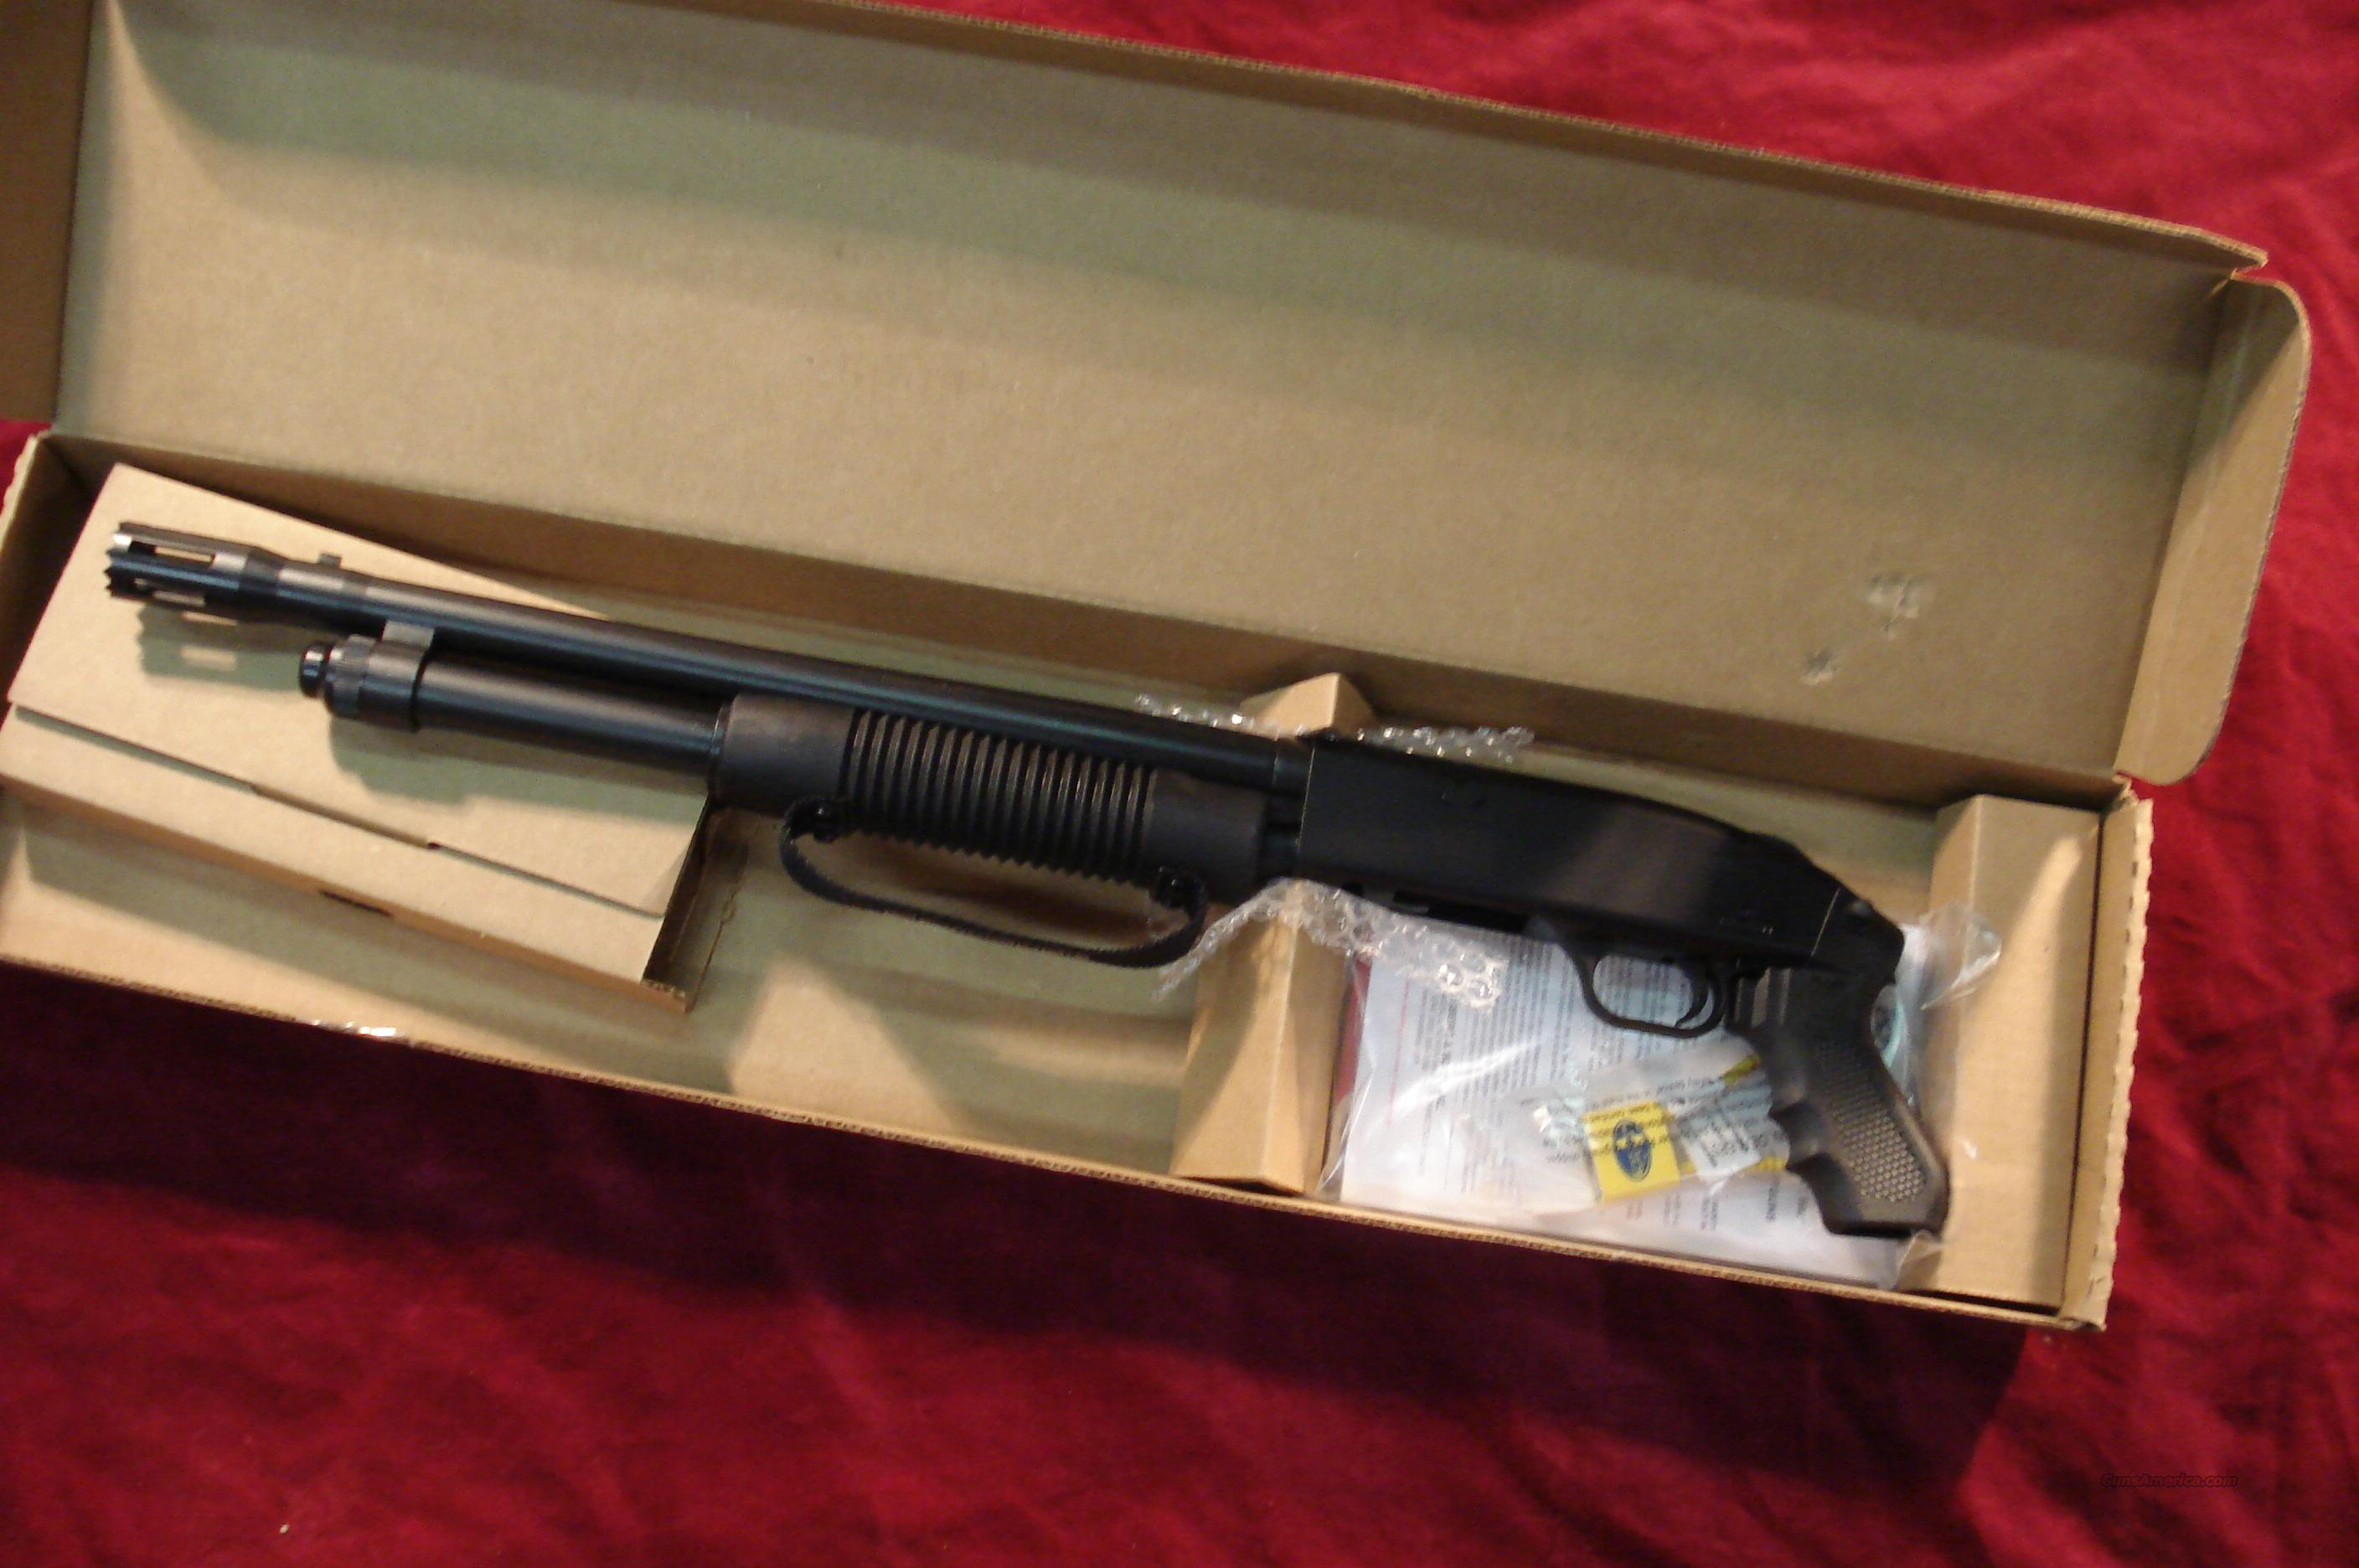 MOSSBERG 500 TACTICAL BREACHER 12G PISTOL GRIP SHOTGUN NEW  Guns > Shotguns > Mossberg Shotguns > Pump > Tactical